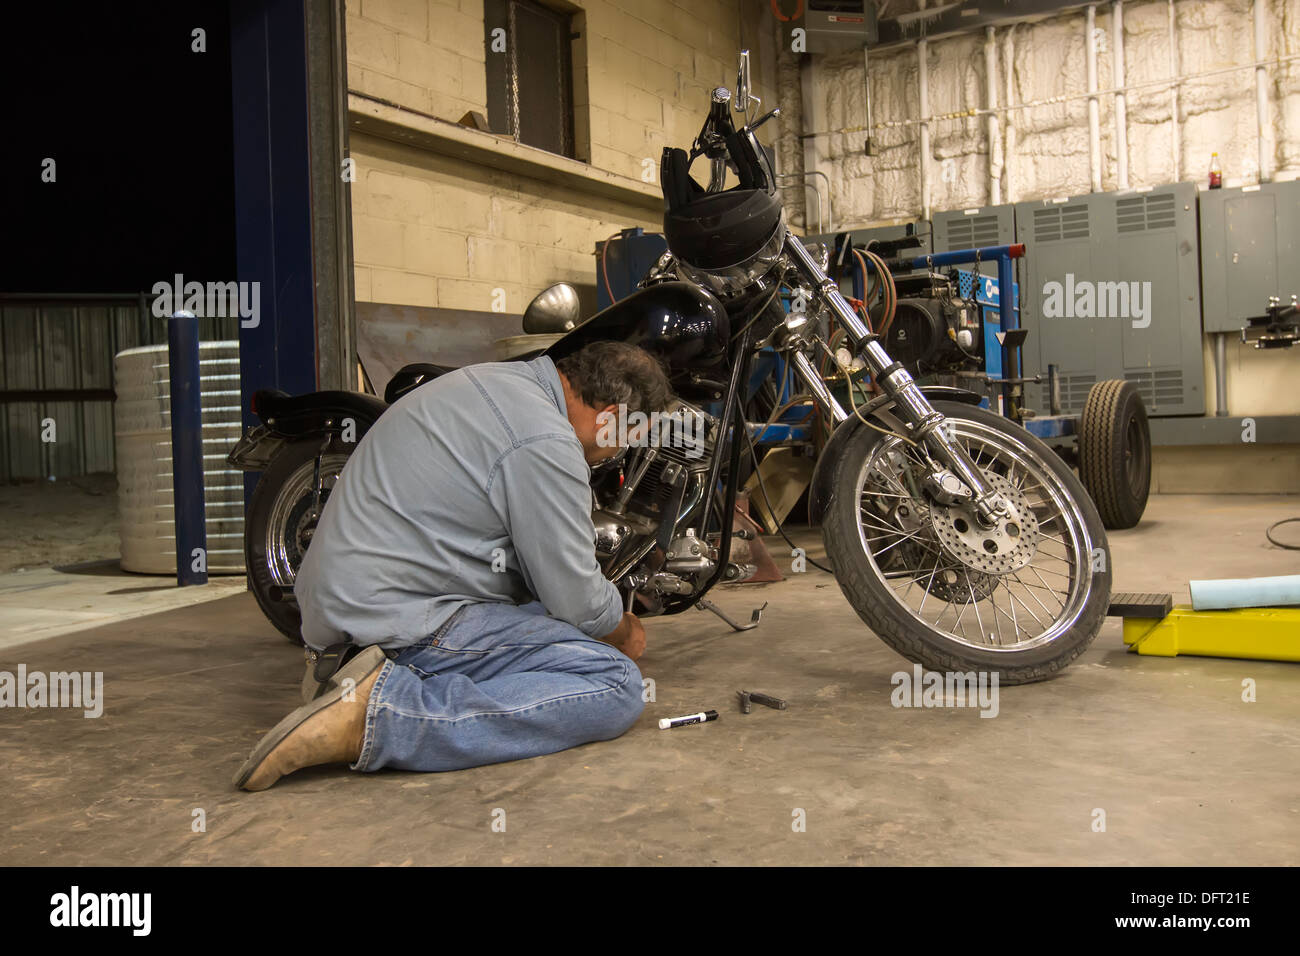 Man working on an American-made motorcycle in a mechanic garage. - Stock Image